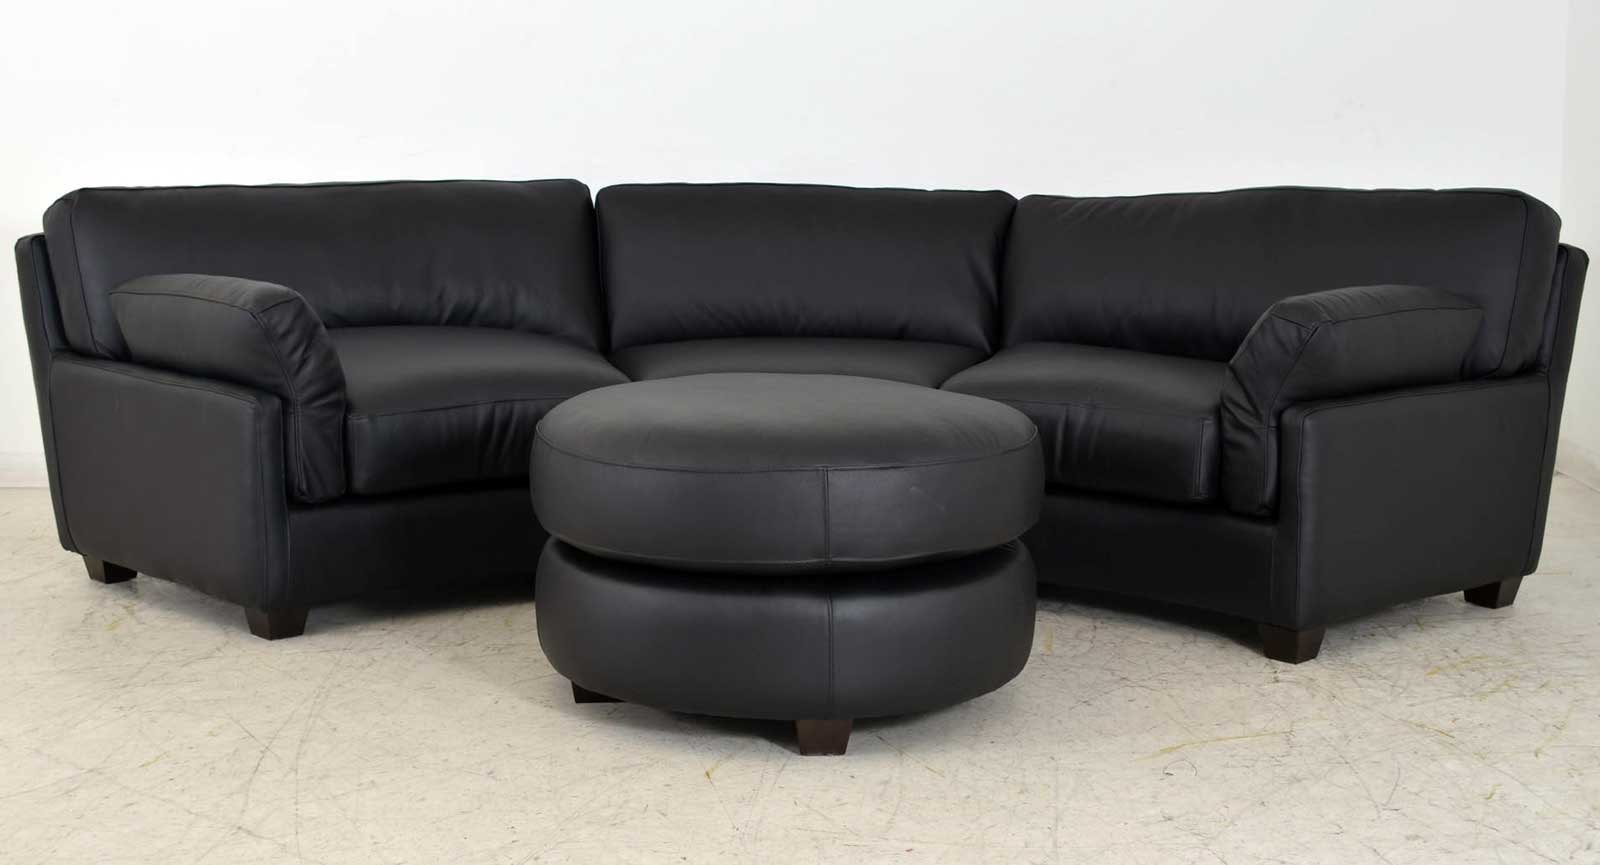 Ottomane sofa interesting image of leather ottoman couch for Sofa ottomane